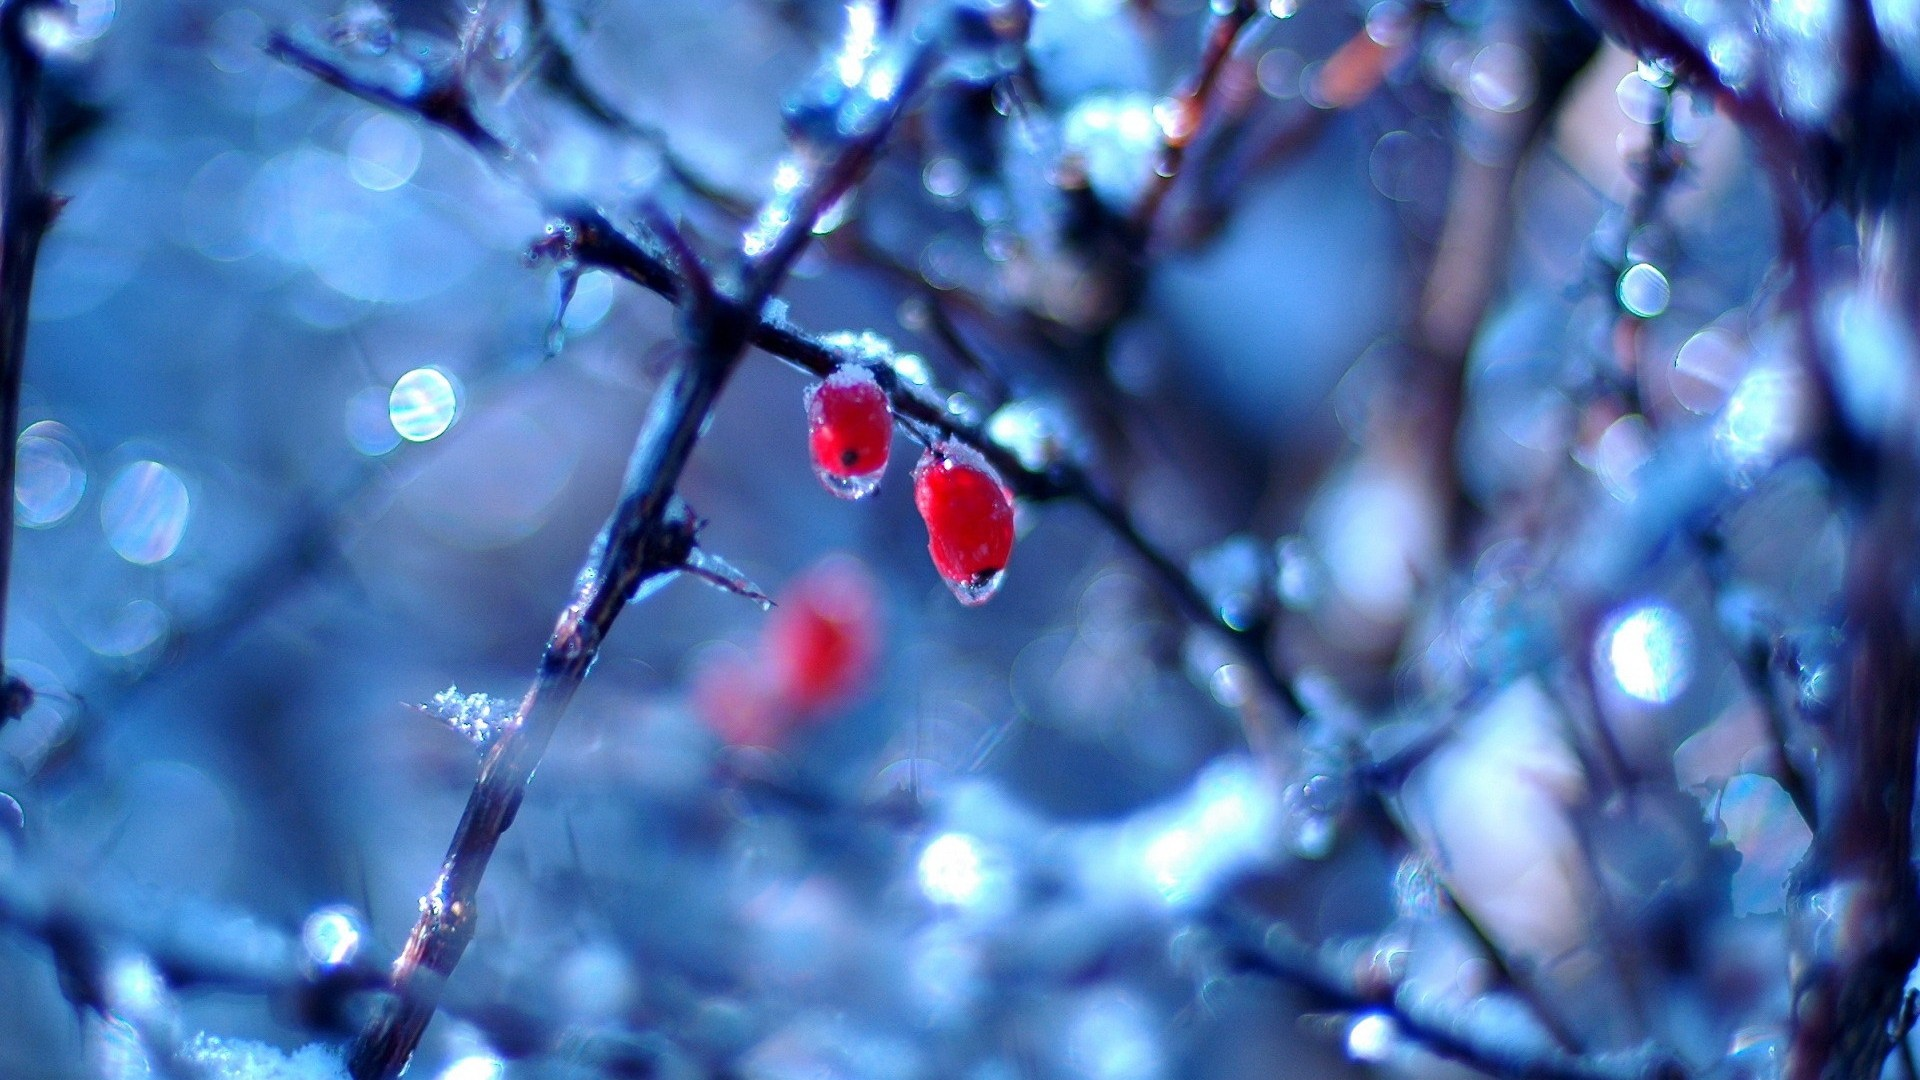 Red-Fruit-in-Ice-Cool-Root-Tree-Winter-Nature-Wallpaper